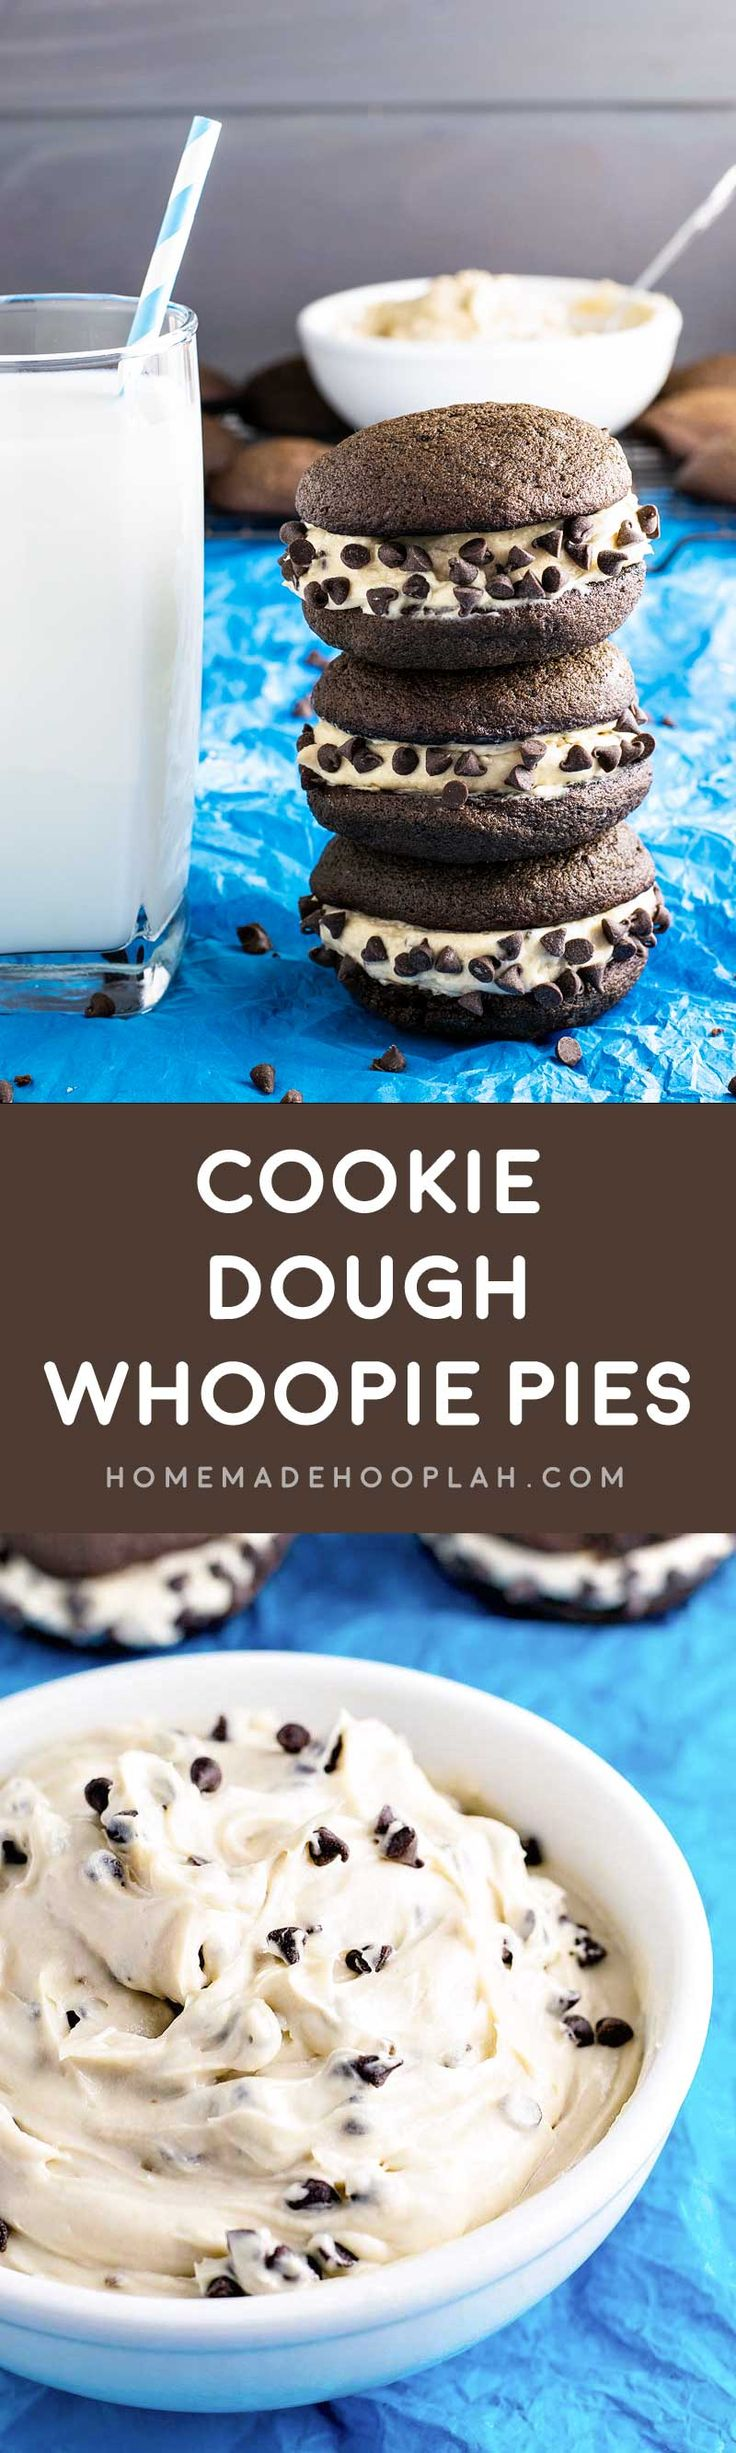 Cookie Dough Whoopie Pies! Creamy (eggless) cookie dough sandwiched between two chocolate cake cookies. A perfect indulgently sweet finger food! | HomemadeHooplah.com